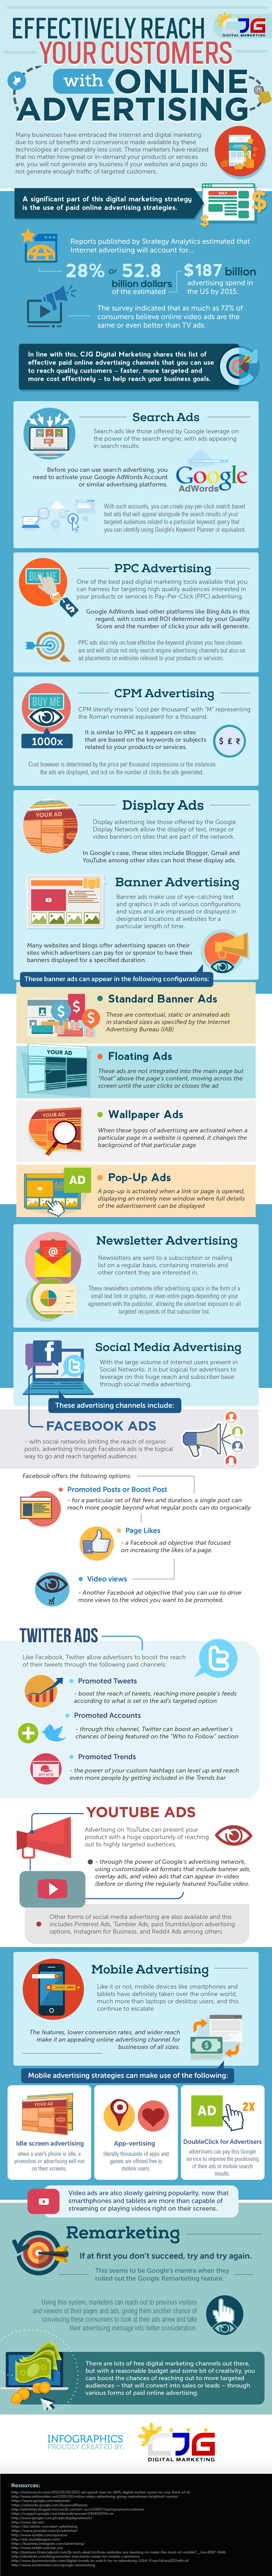 Effectively Reach Your Customers with Online Advertising - #Infographic